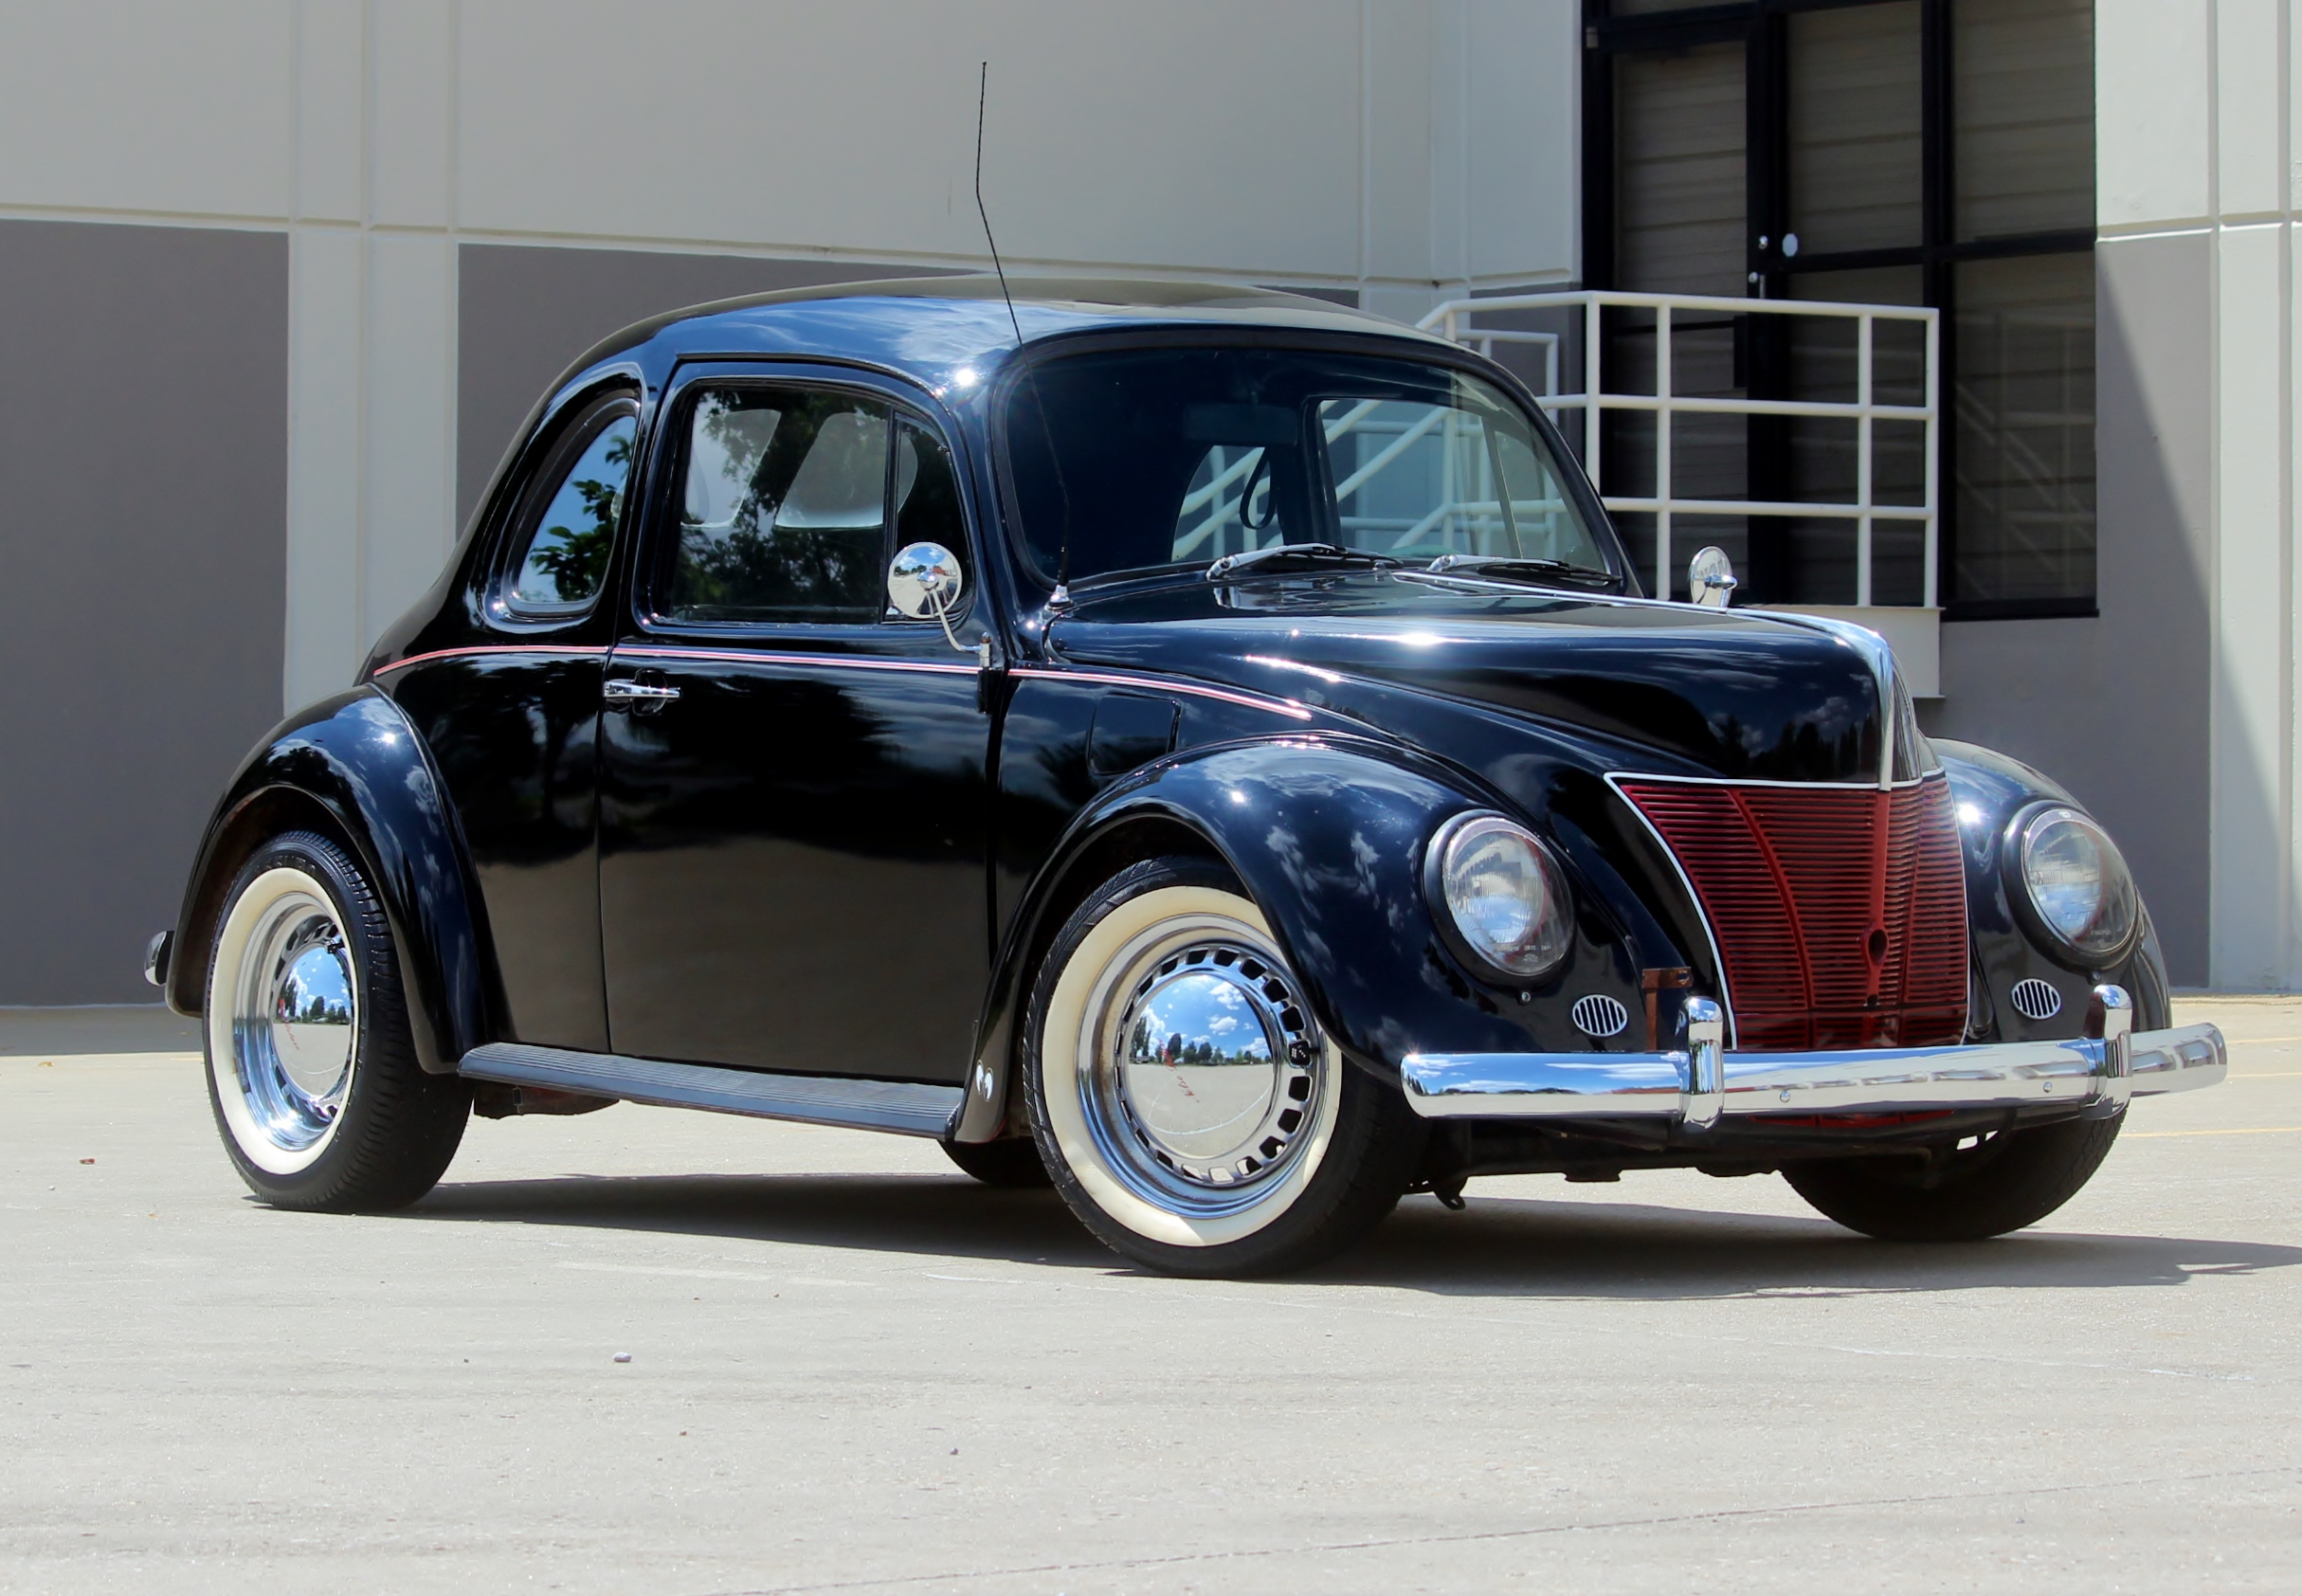 1971 VOLKSWAGEN 40 Ford Coupe Beetle for sale, Muscle Cars